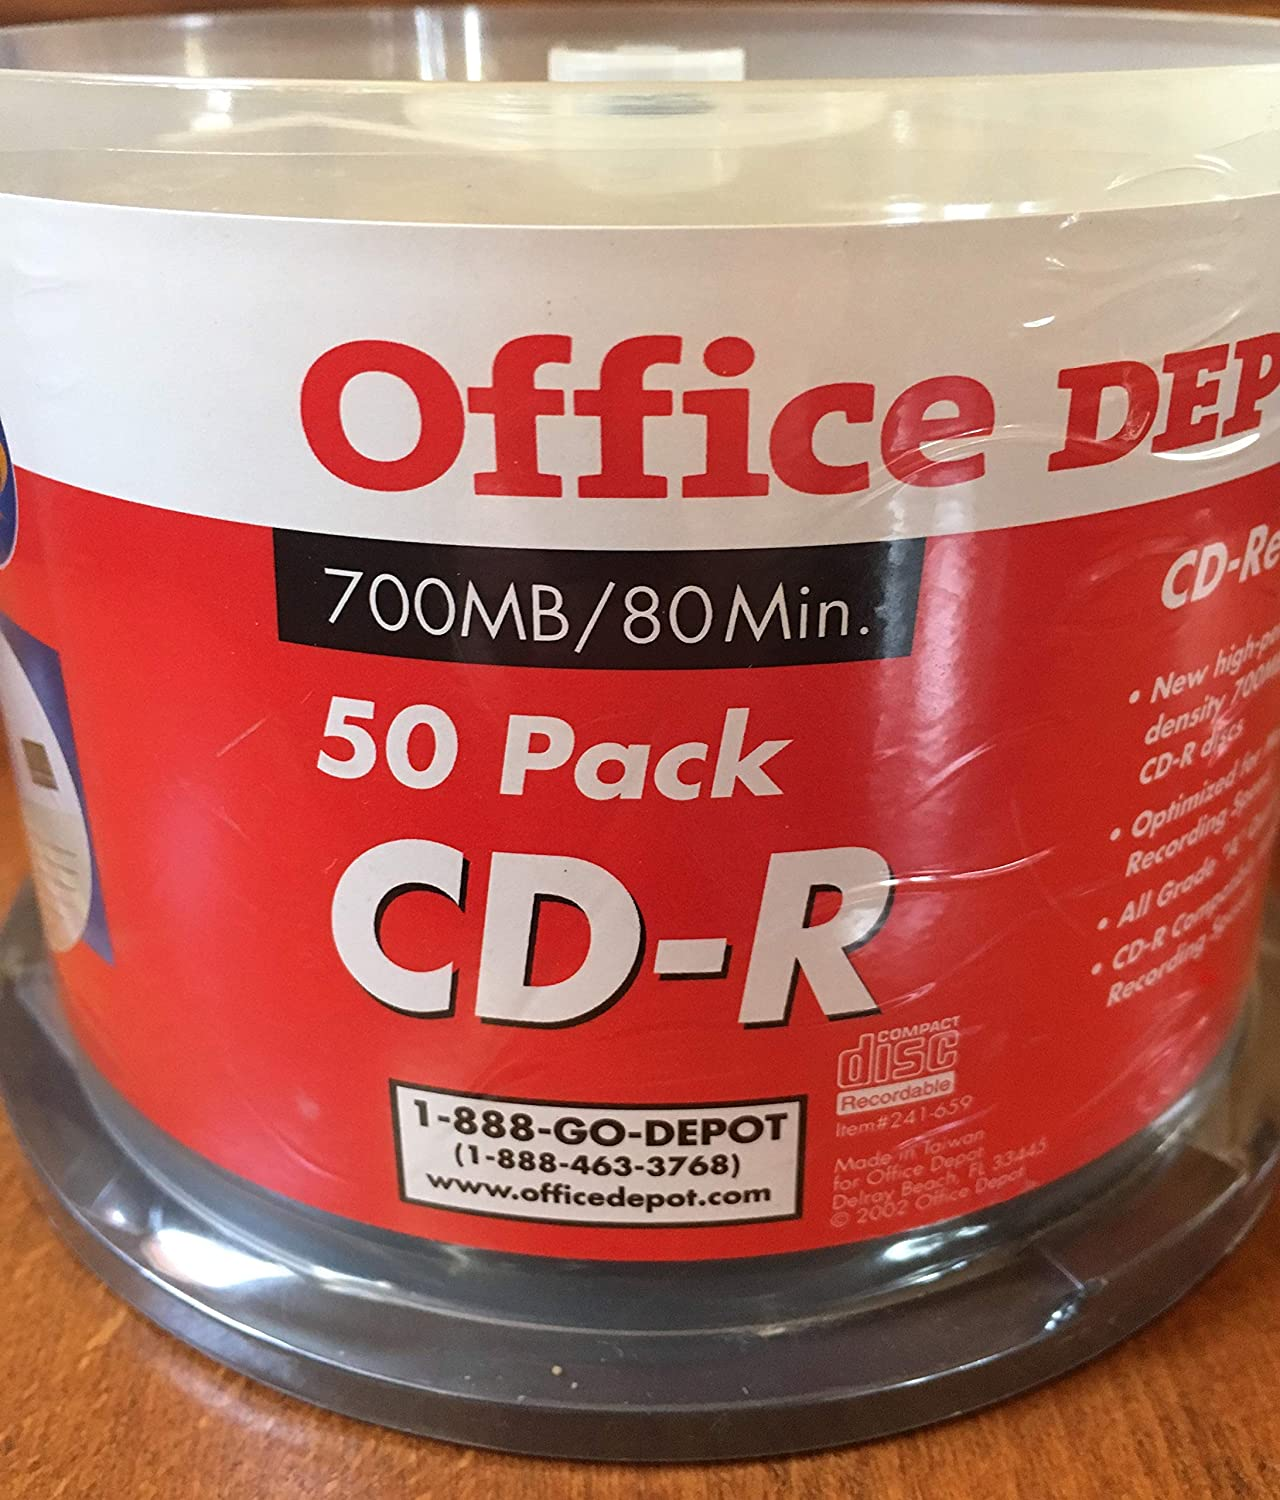 Office Depot(R) CD-R Spindle, 700MB/80 Minutes, Pack Of 50 (Discontinued by Manufacturer) Inc. 15721